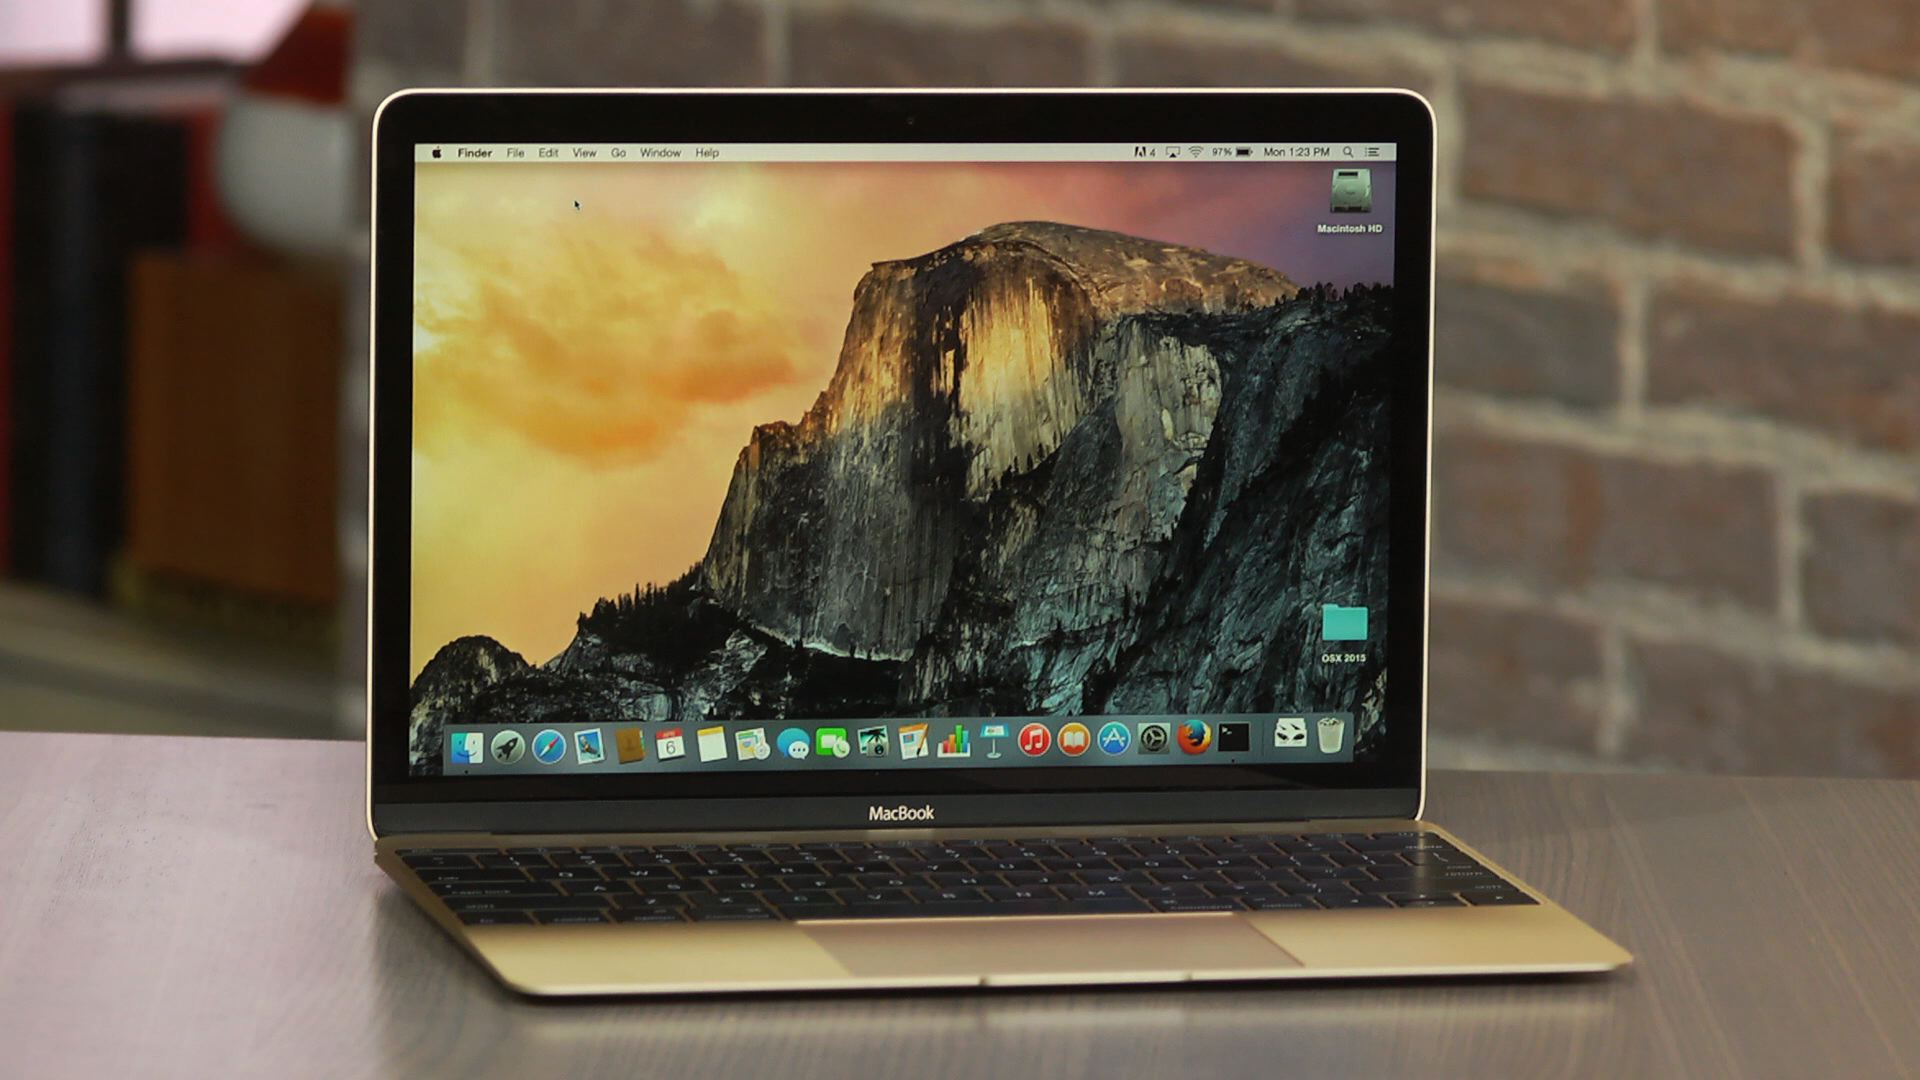 Video: Apple MacBook (12-inch, 2015)